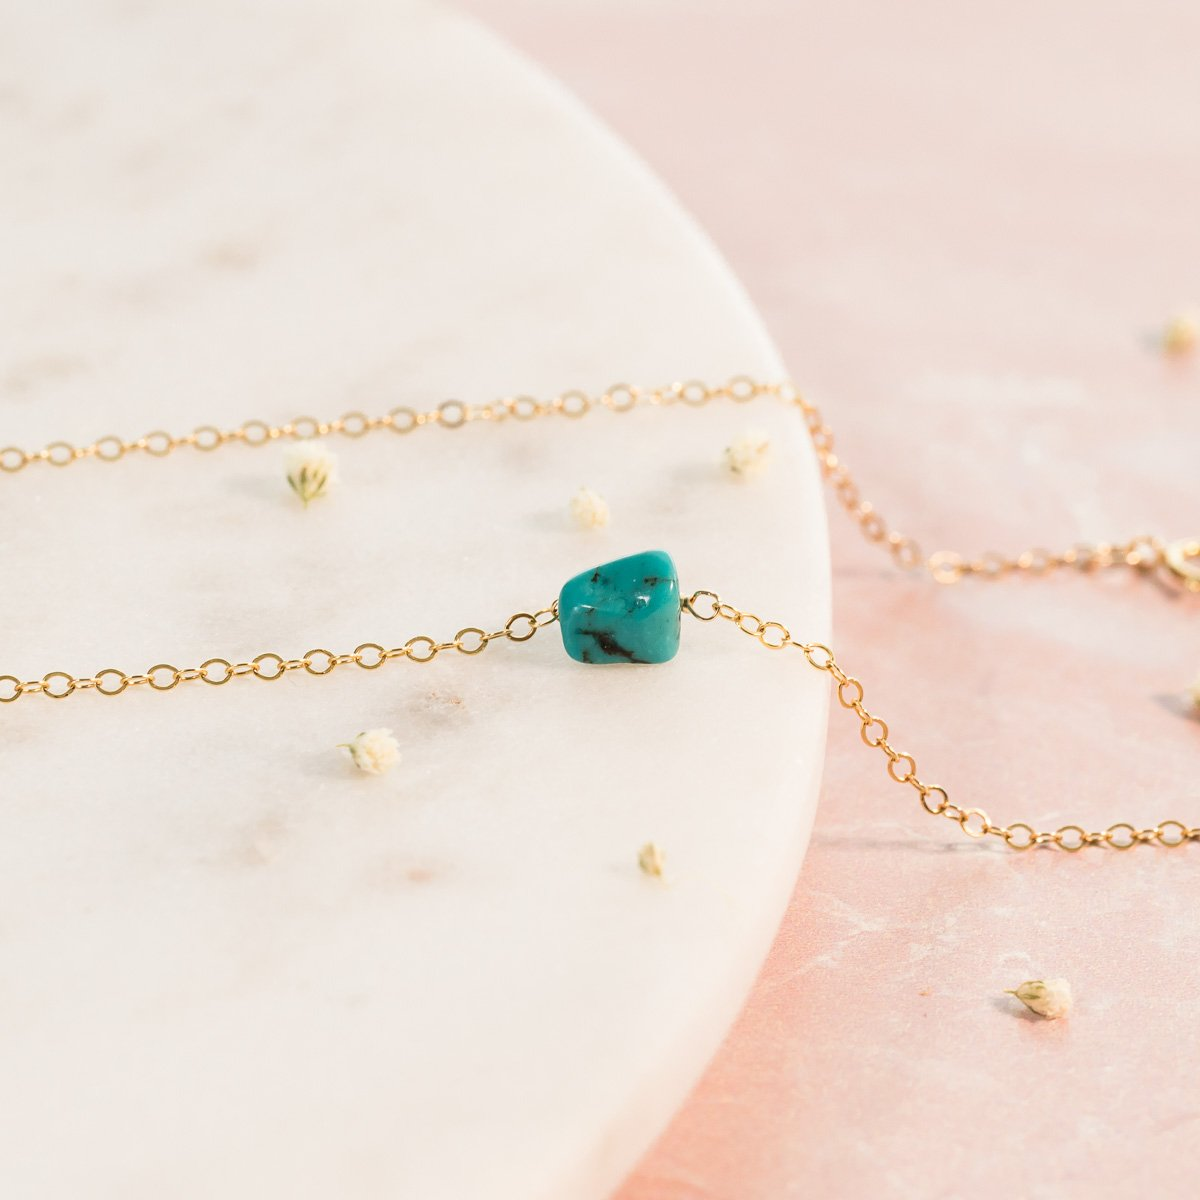 Raw Turquoise Necklace | Liz.Beth Jewelry Co.